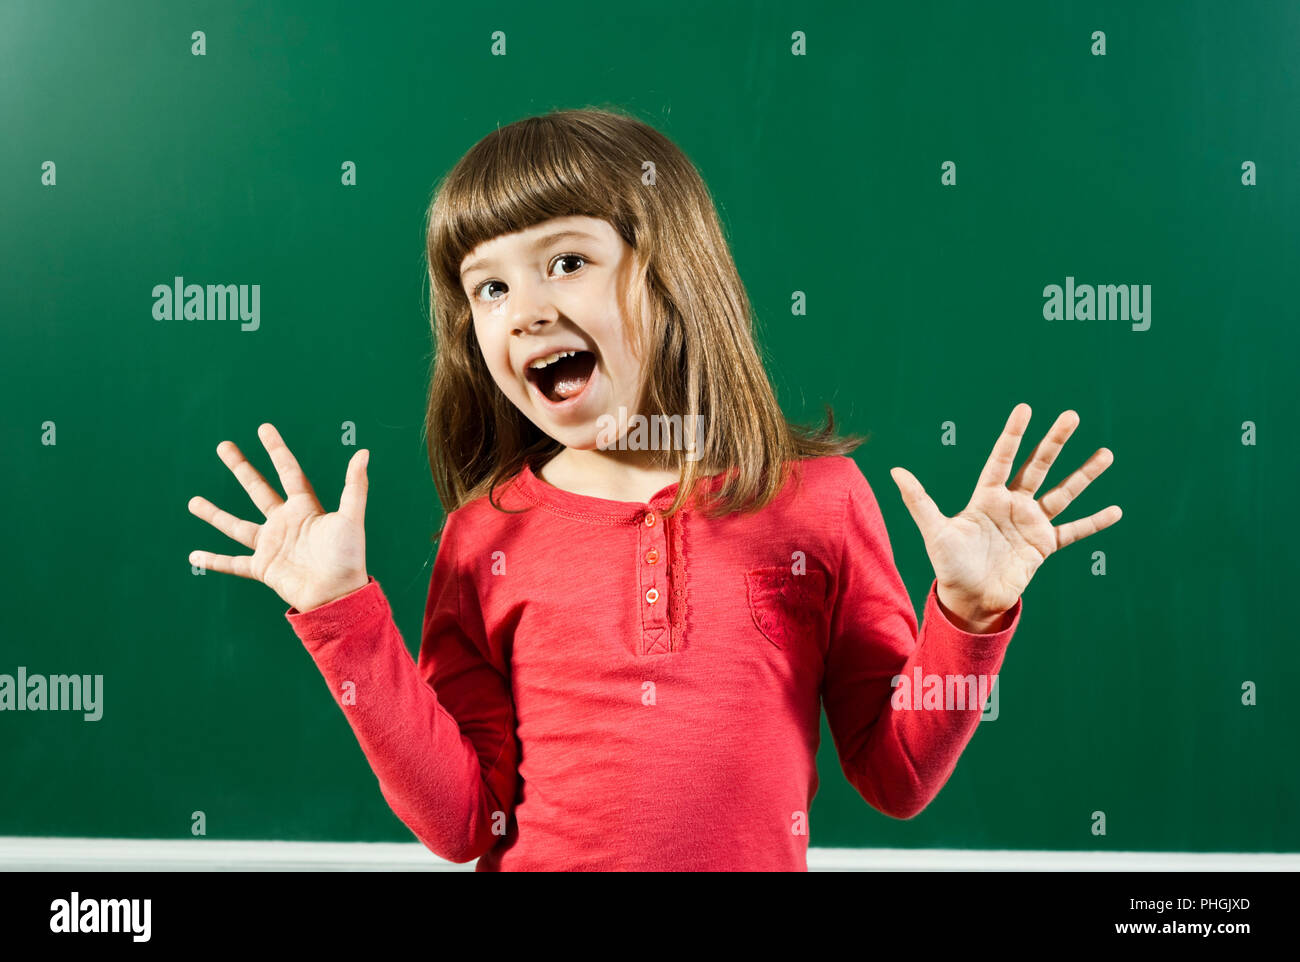 Cheerful little girl - Stock Image